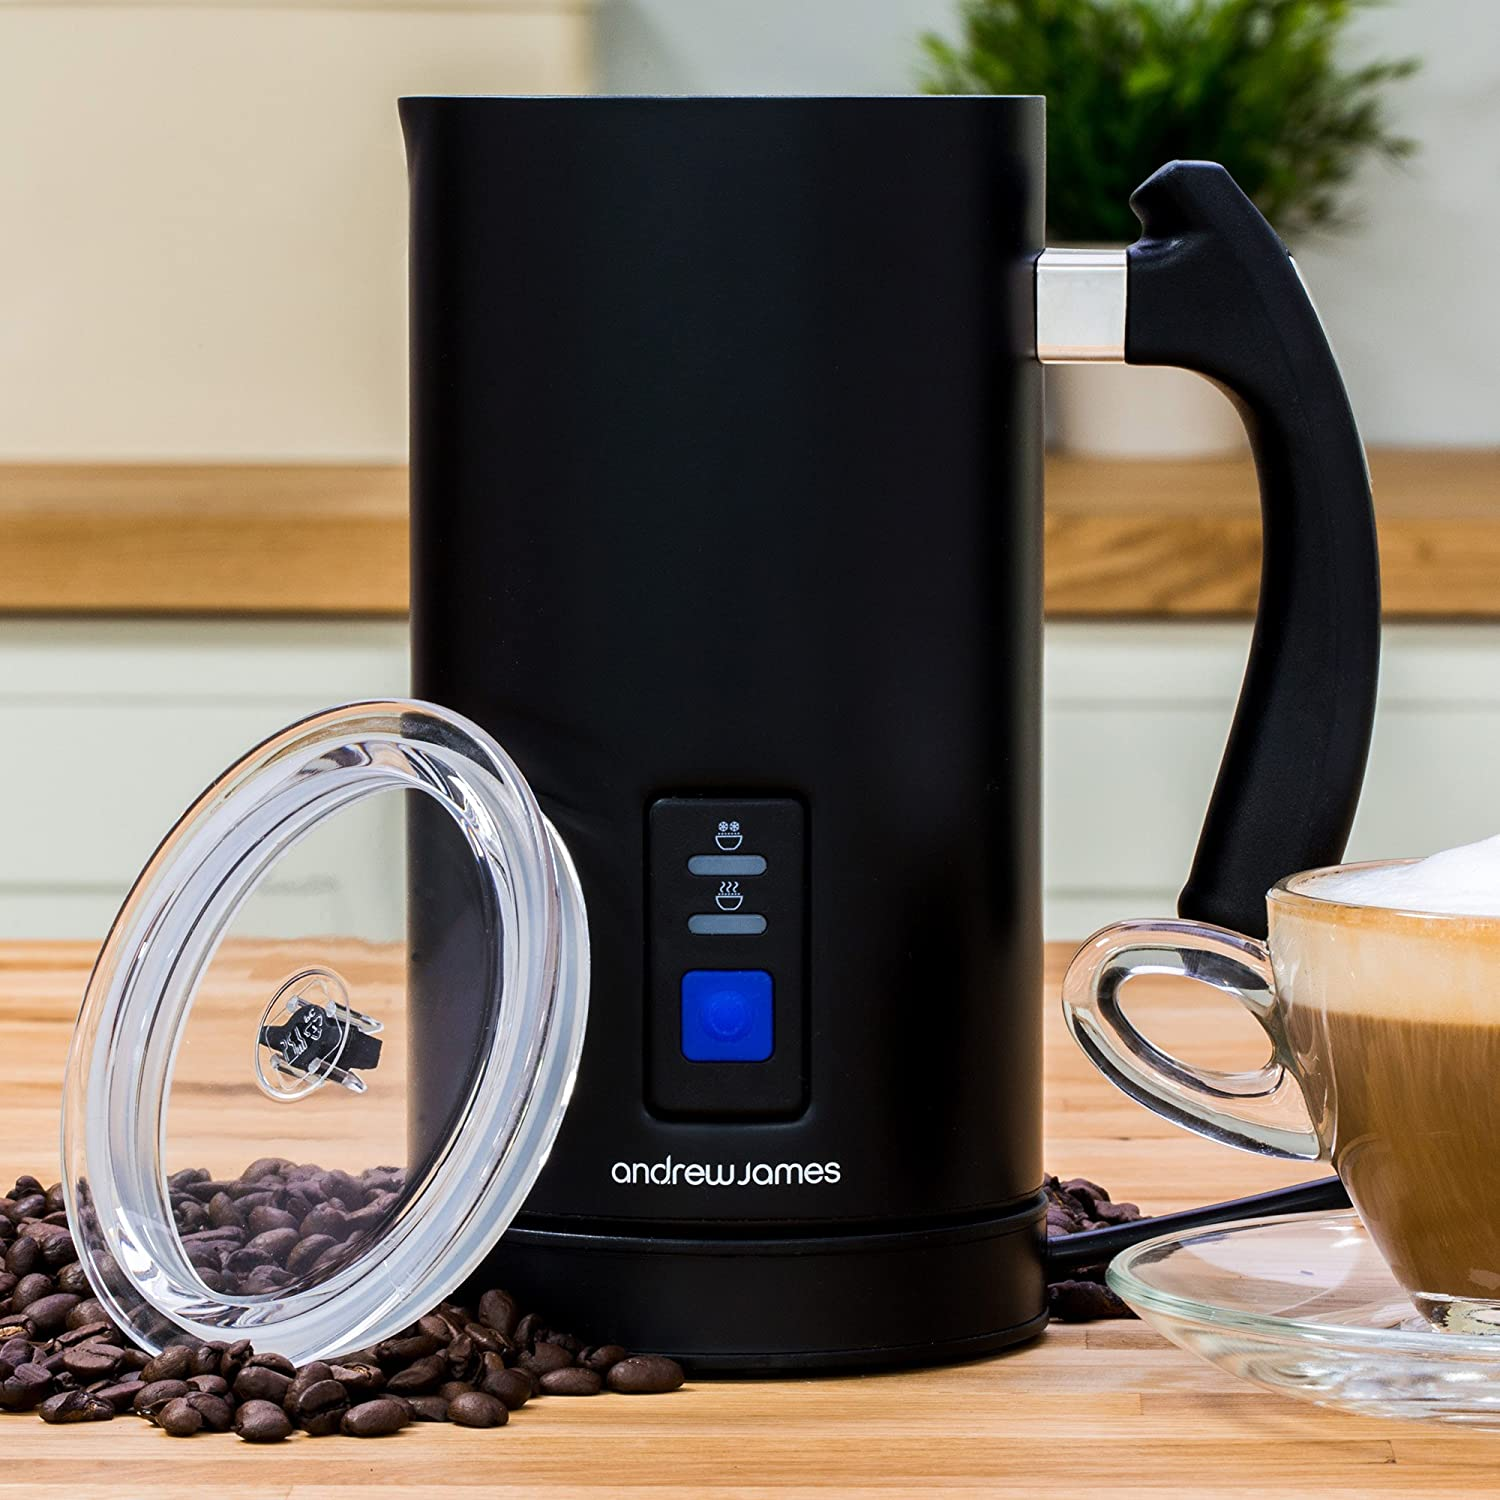 Andrew James Electric Milk Frother Heater Warmer Jug Machine 2 Attachments Including Whisk Ideal For Coffee Latte Or Cappuccino Non Stick